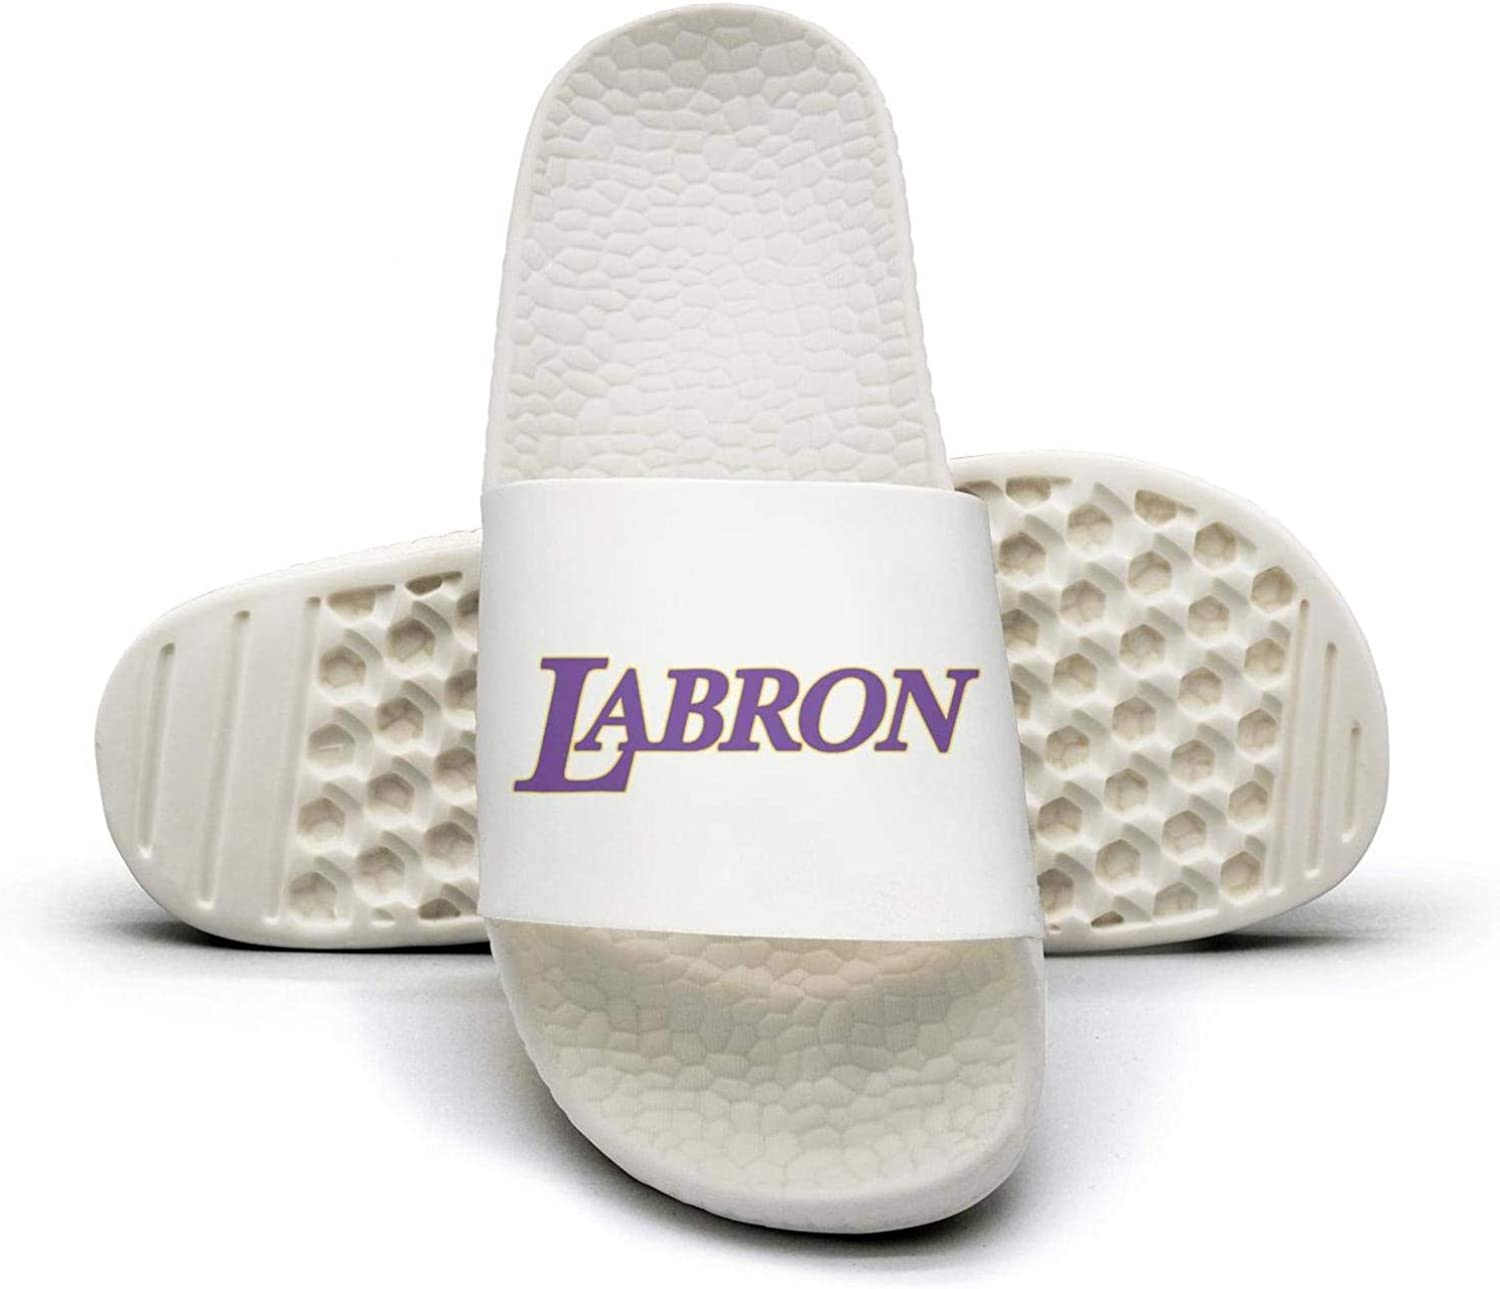 ADIDII Womens Printed Non-Slip Slipper Slide flip Flop Sandals Purple_LABRON_Basketball Logo Summer Soft